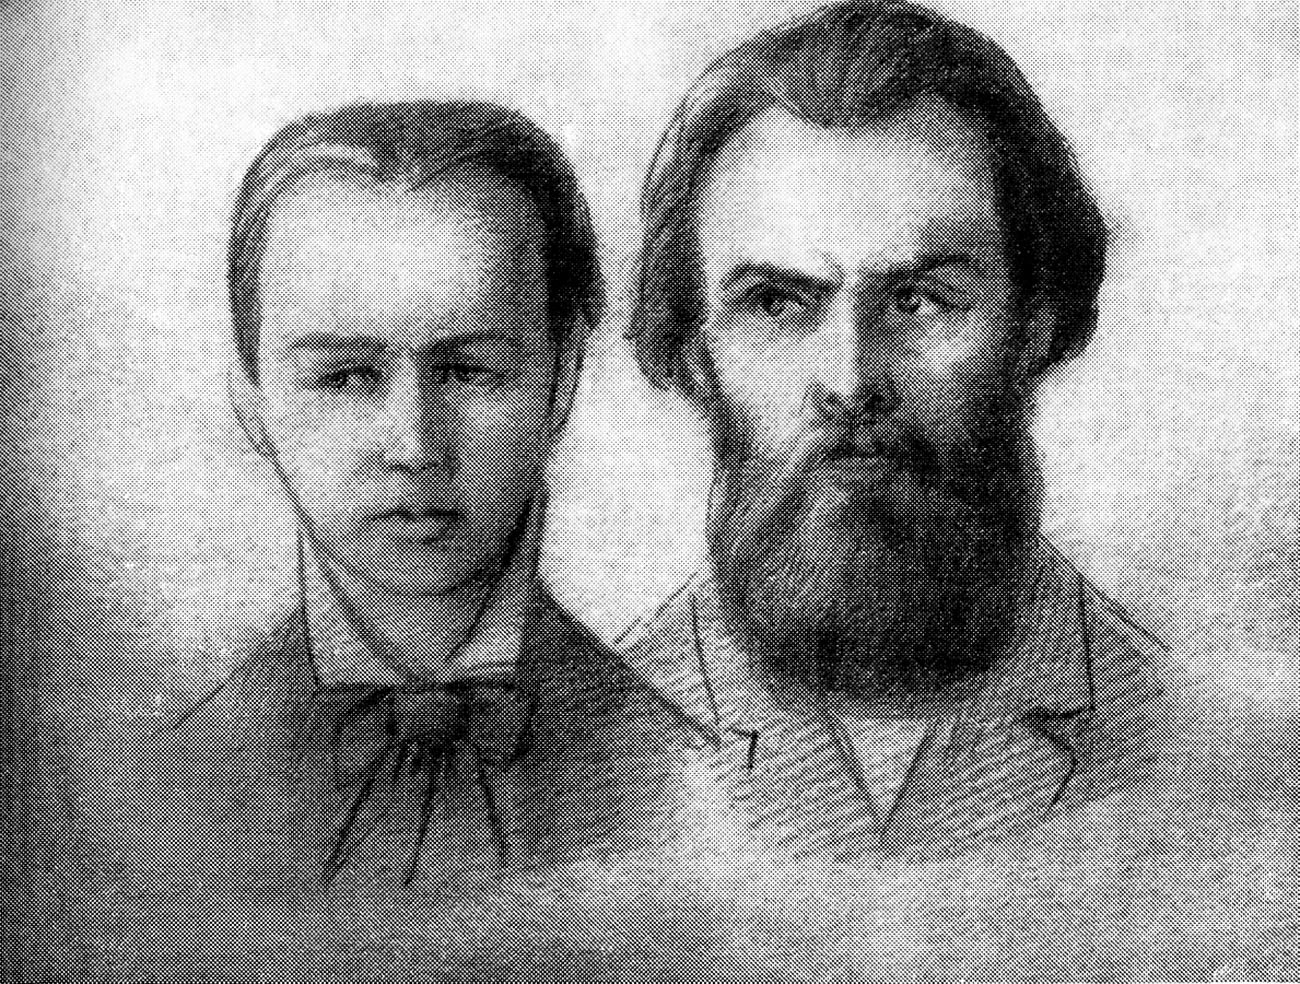 Andrey Zhelyabov and Sofya Perovskaya during the trial following the murder of Alexander II